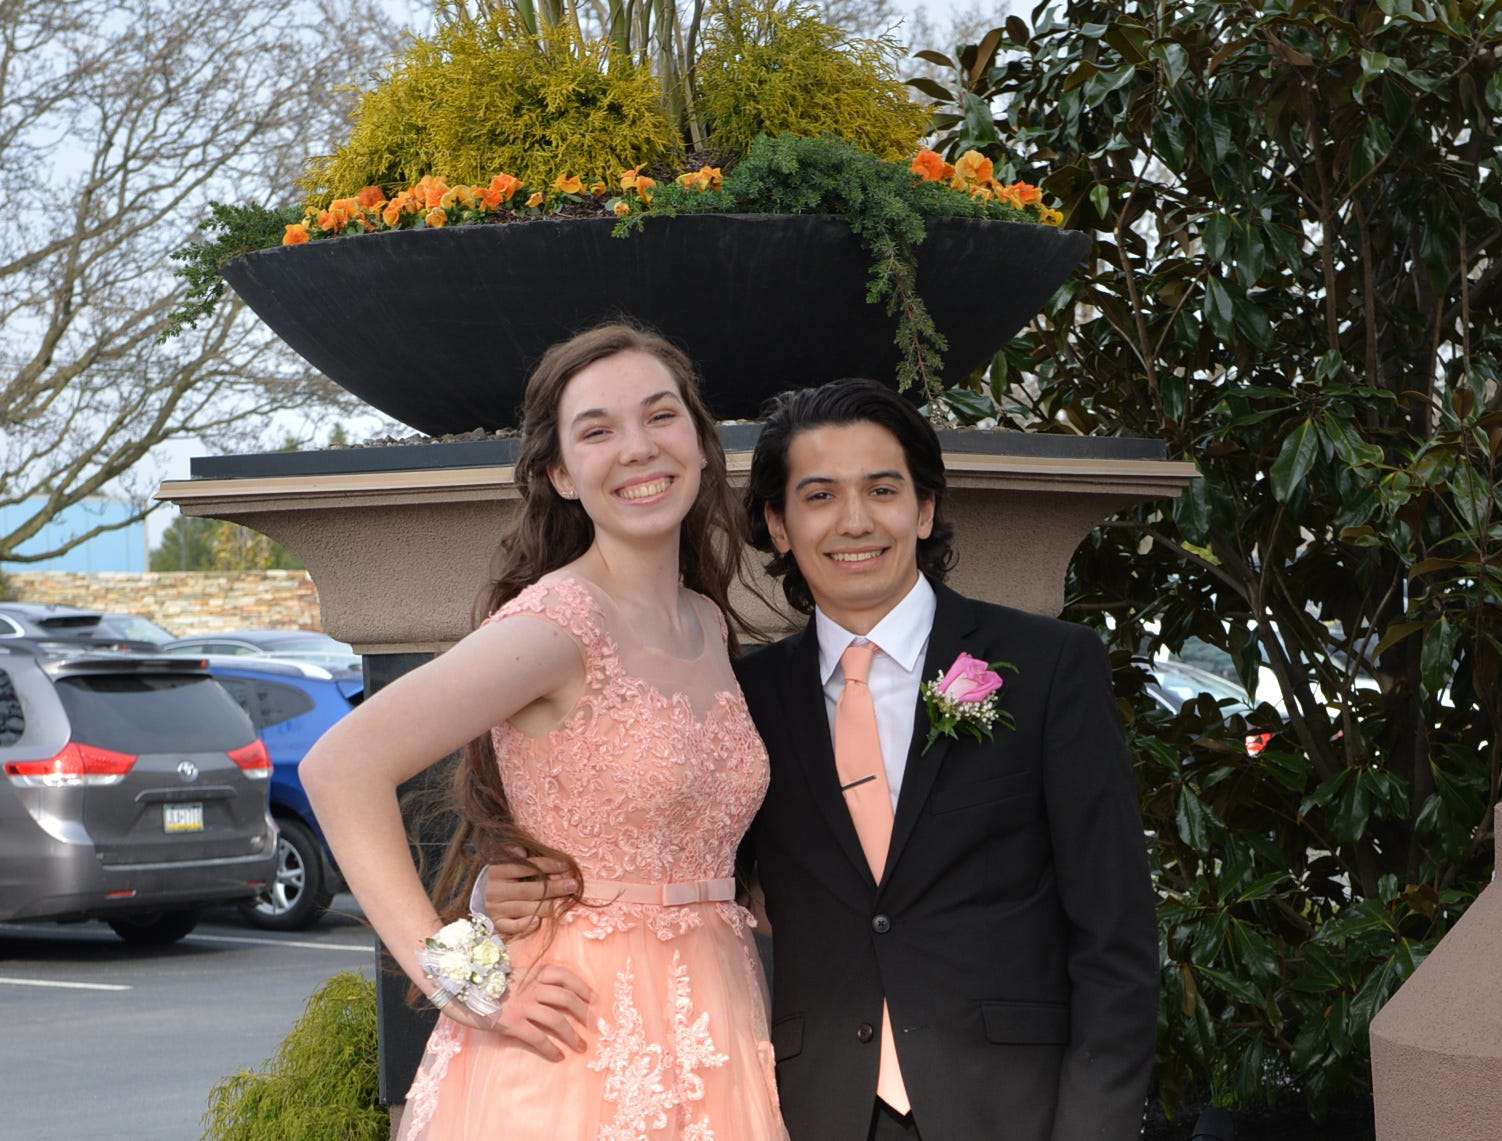 Students attend the 2019 Elco High School prom at Eden Resorts on Saturday, March 30, 2019.